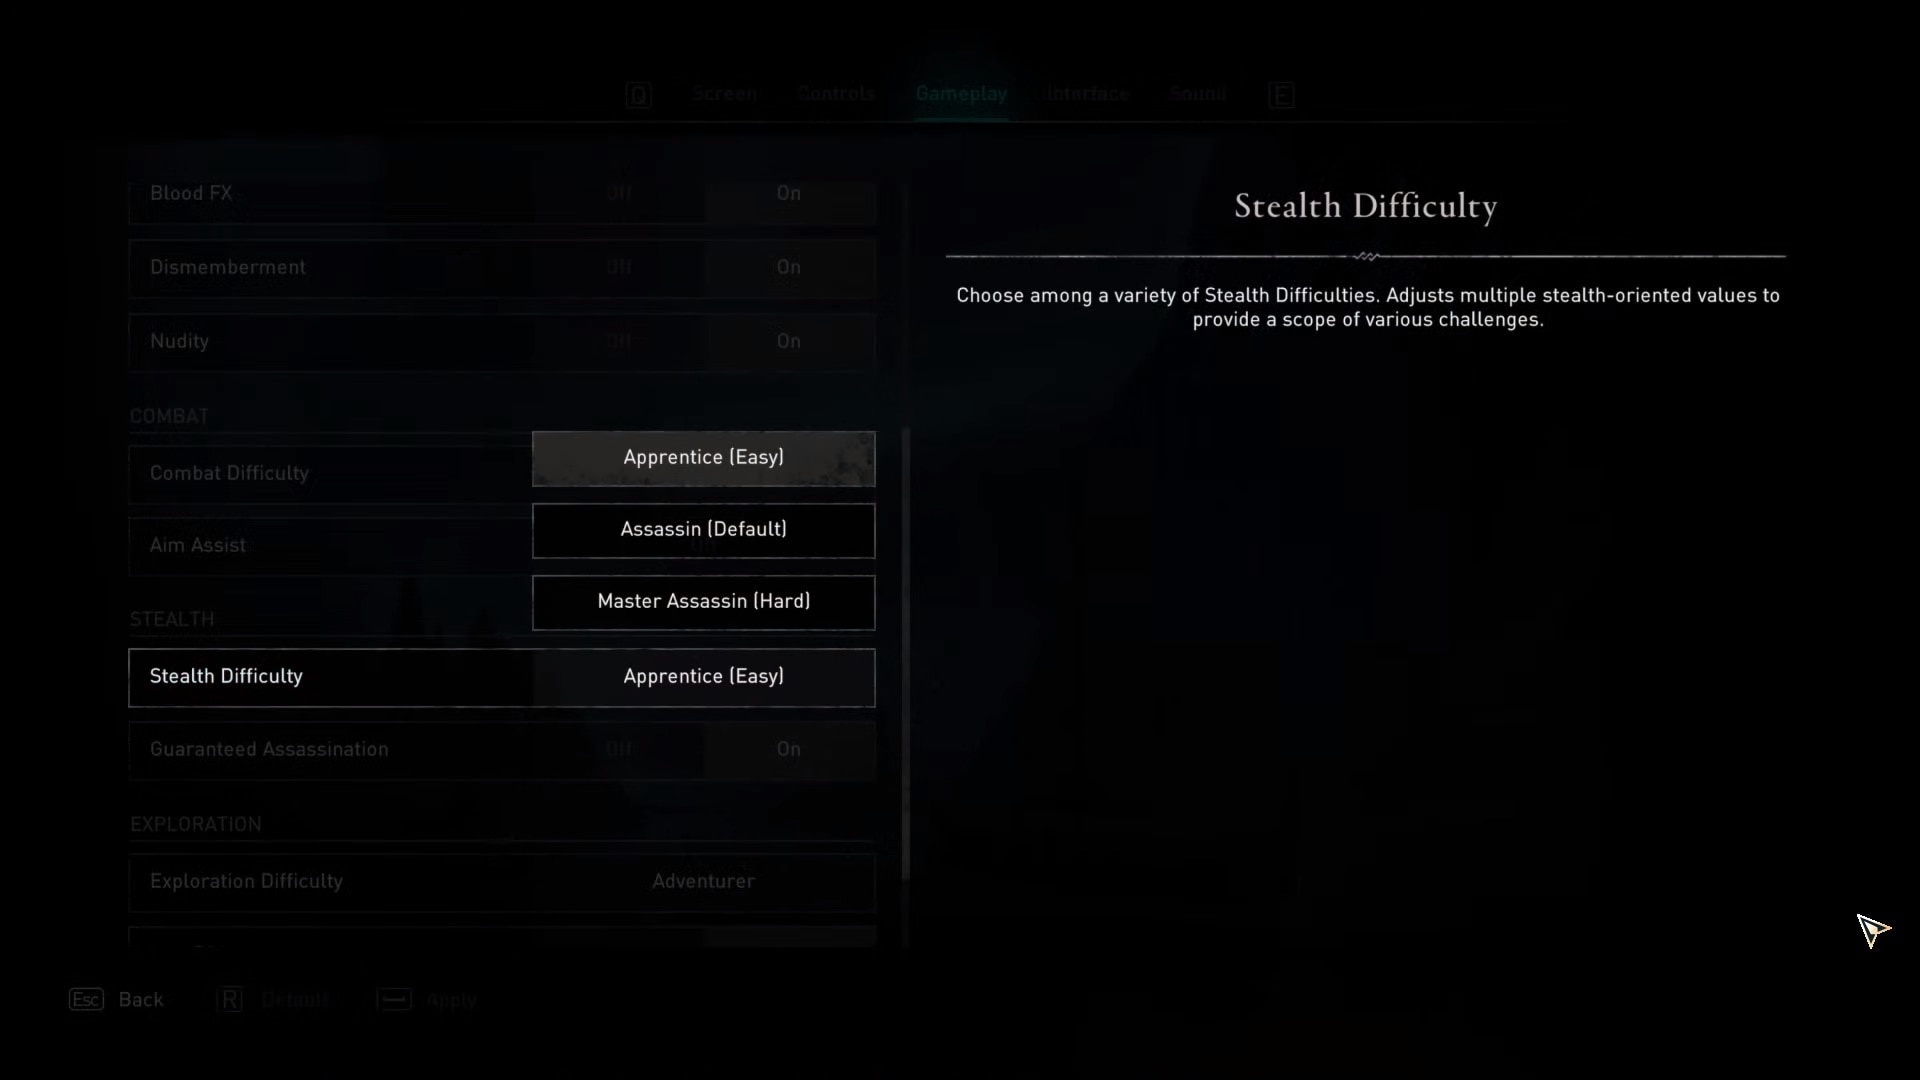 Stealth difficulty option in the gameplay options of Assassin's Creed Valhalla